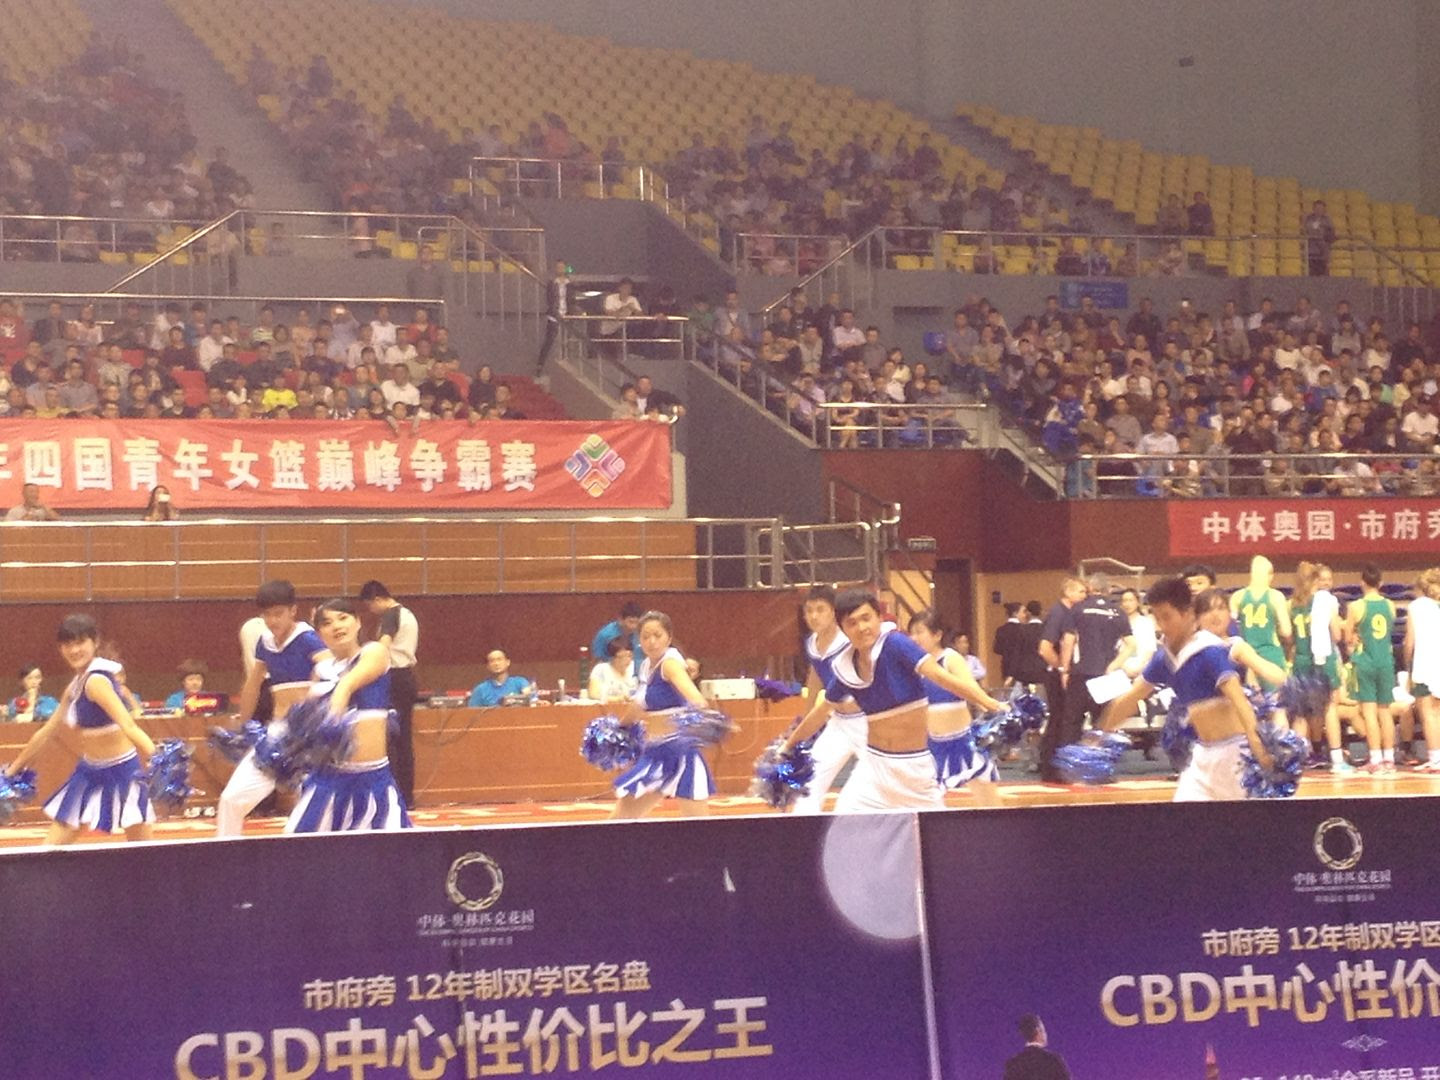 Chinese Cheerleaders photo 2014-05-01201615-2_zpsf6312557.jpg